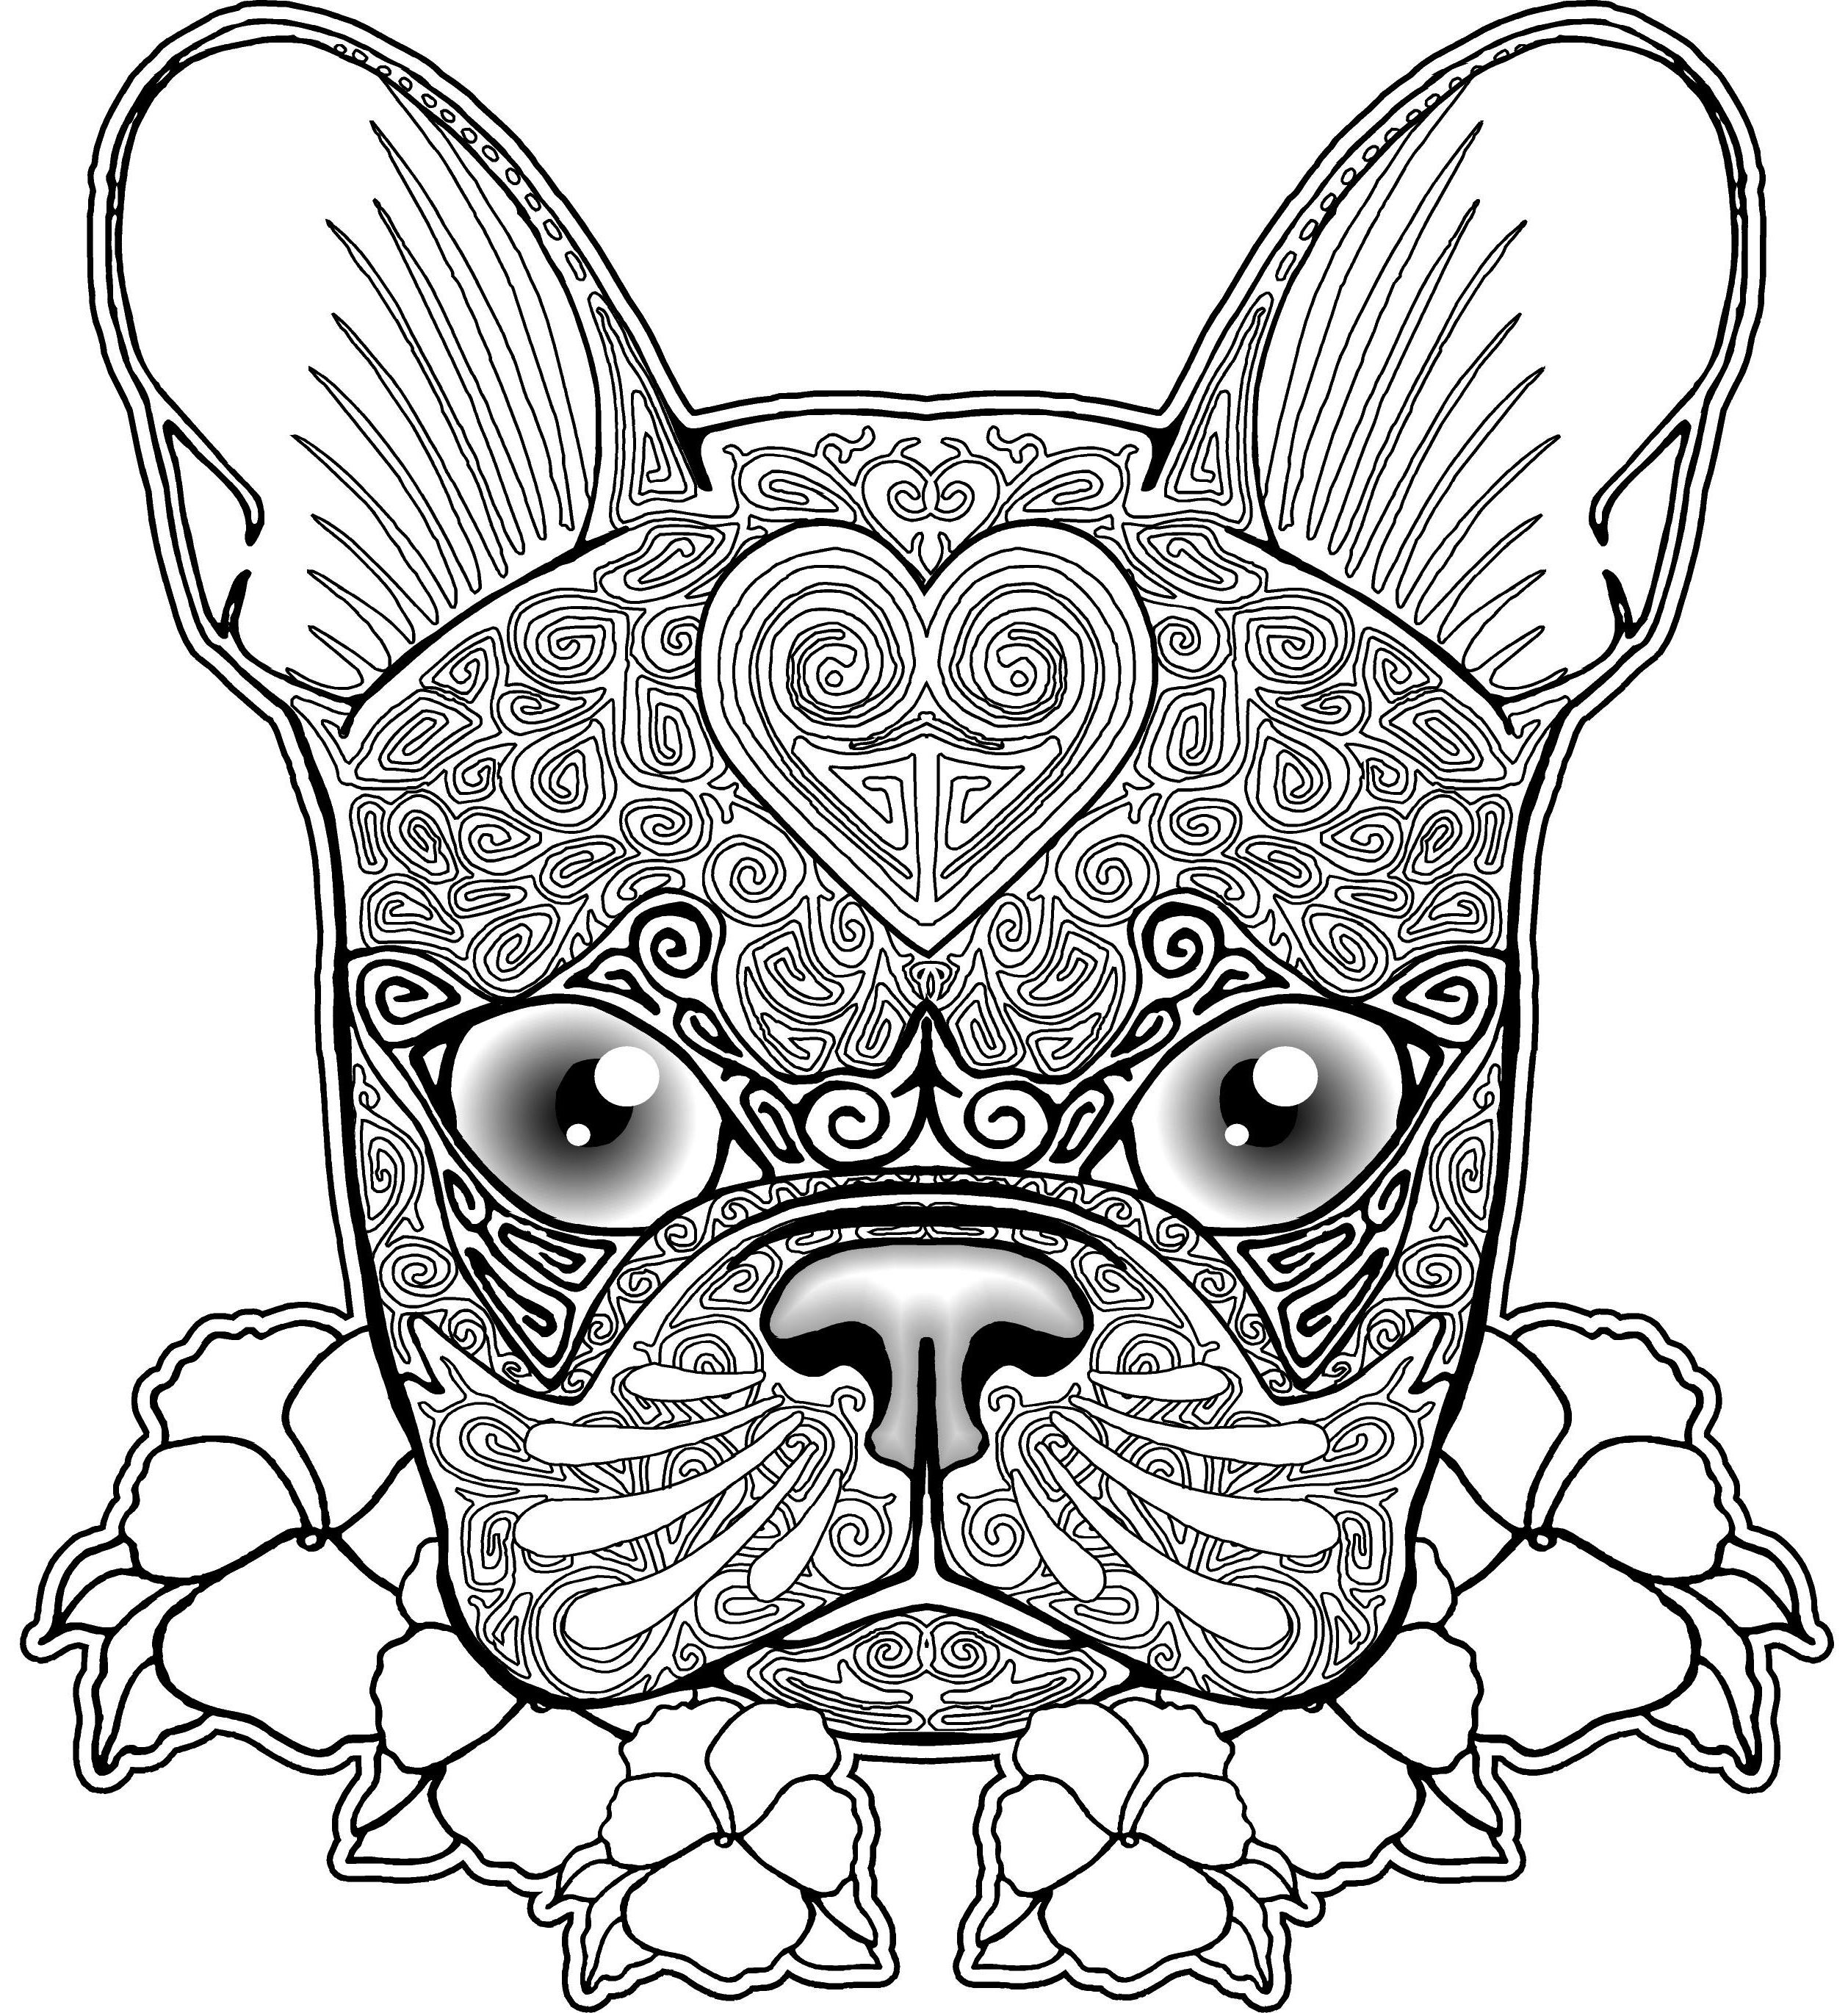 Free coloring pages for adults - Free Bulldog Zentangle Coloring Page For Adults This Will Be Great For Mom Who Loves Boston Terriers